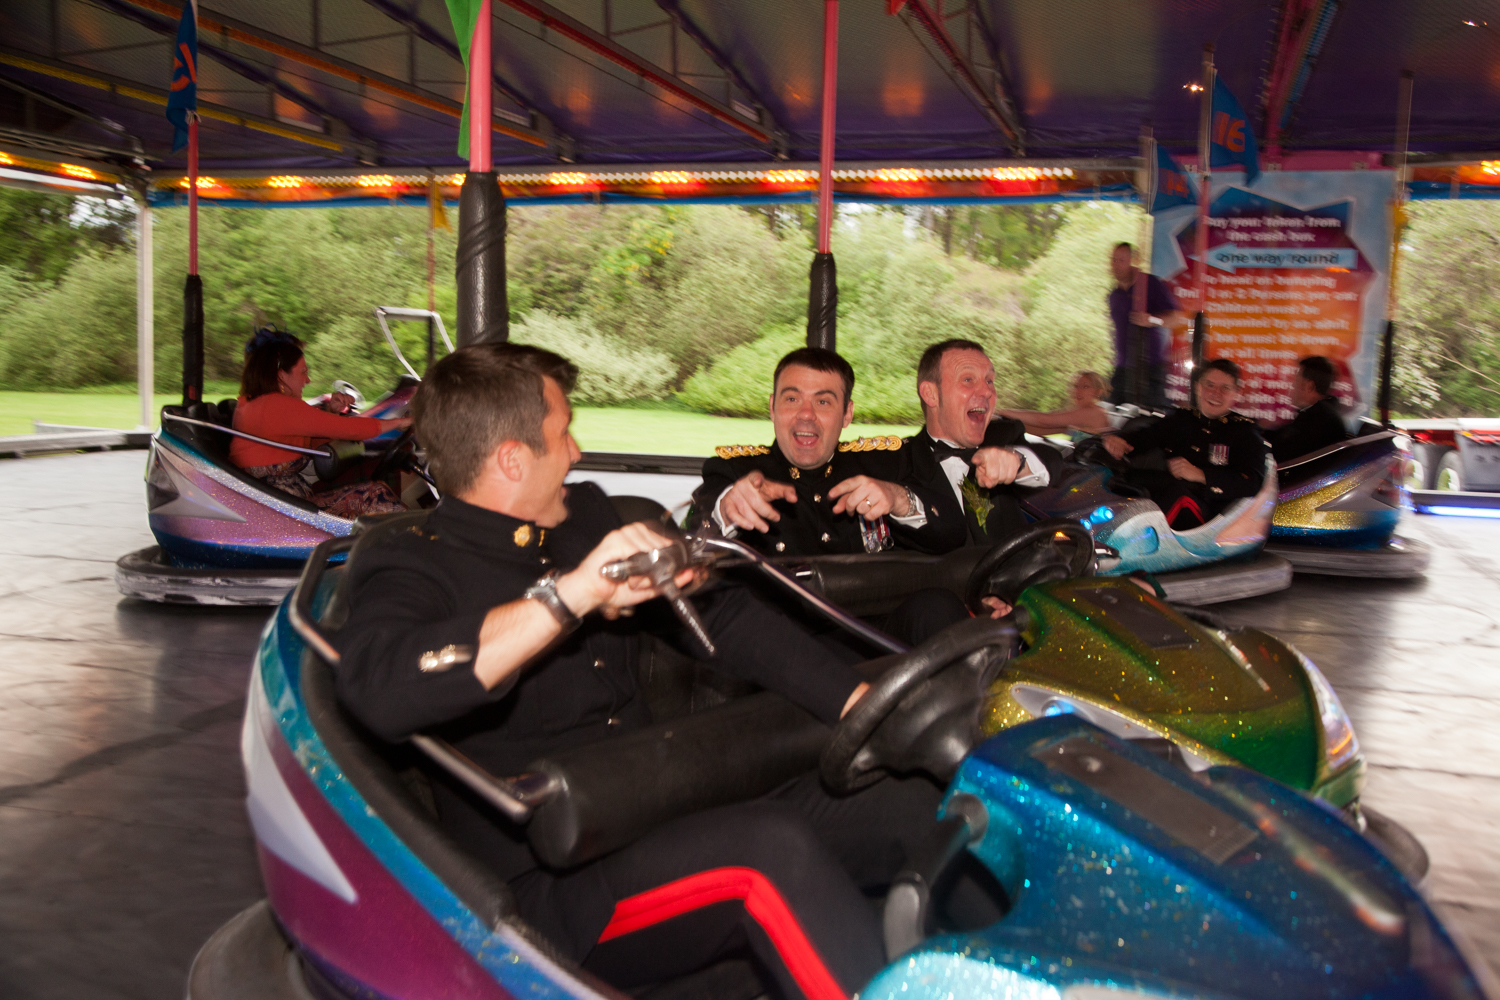 EDINBURGH_CASTLE_WEDDING_CHAPEL_ST_ARMY_DODGEMS_CASINO-8040.jpg